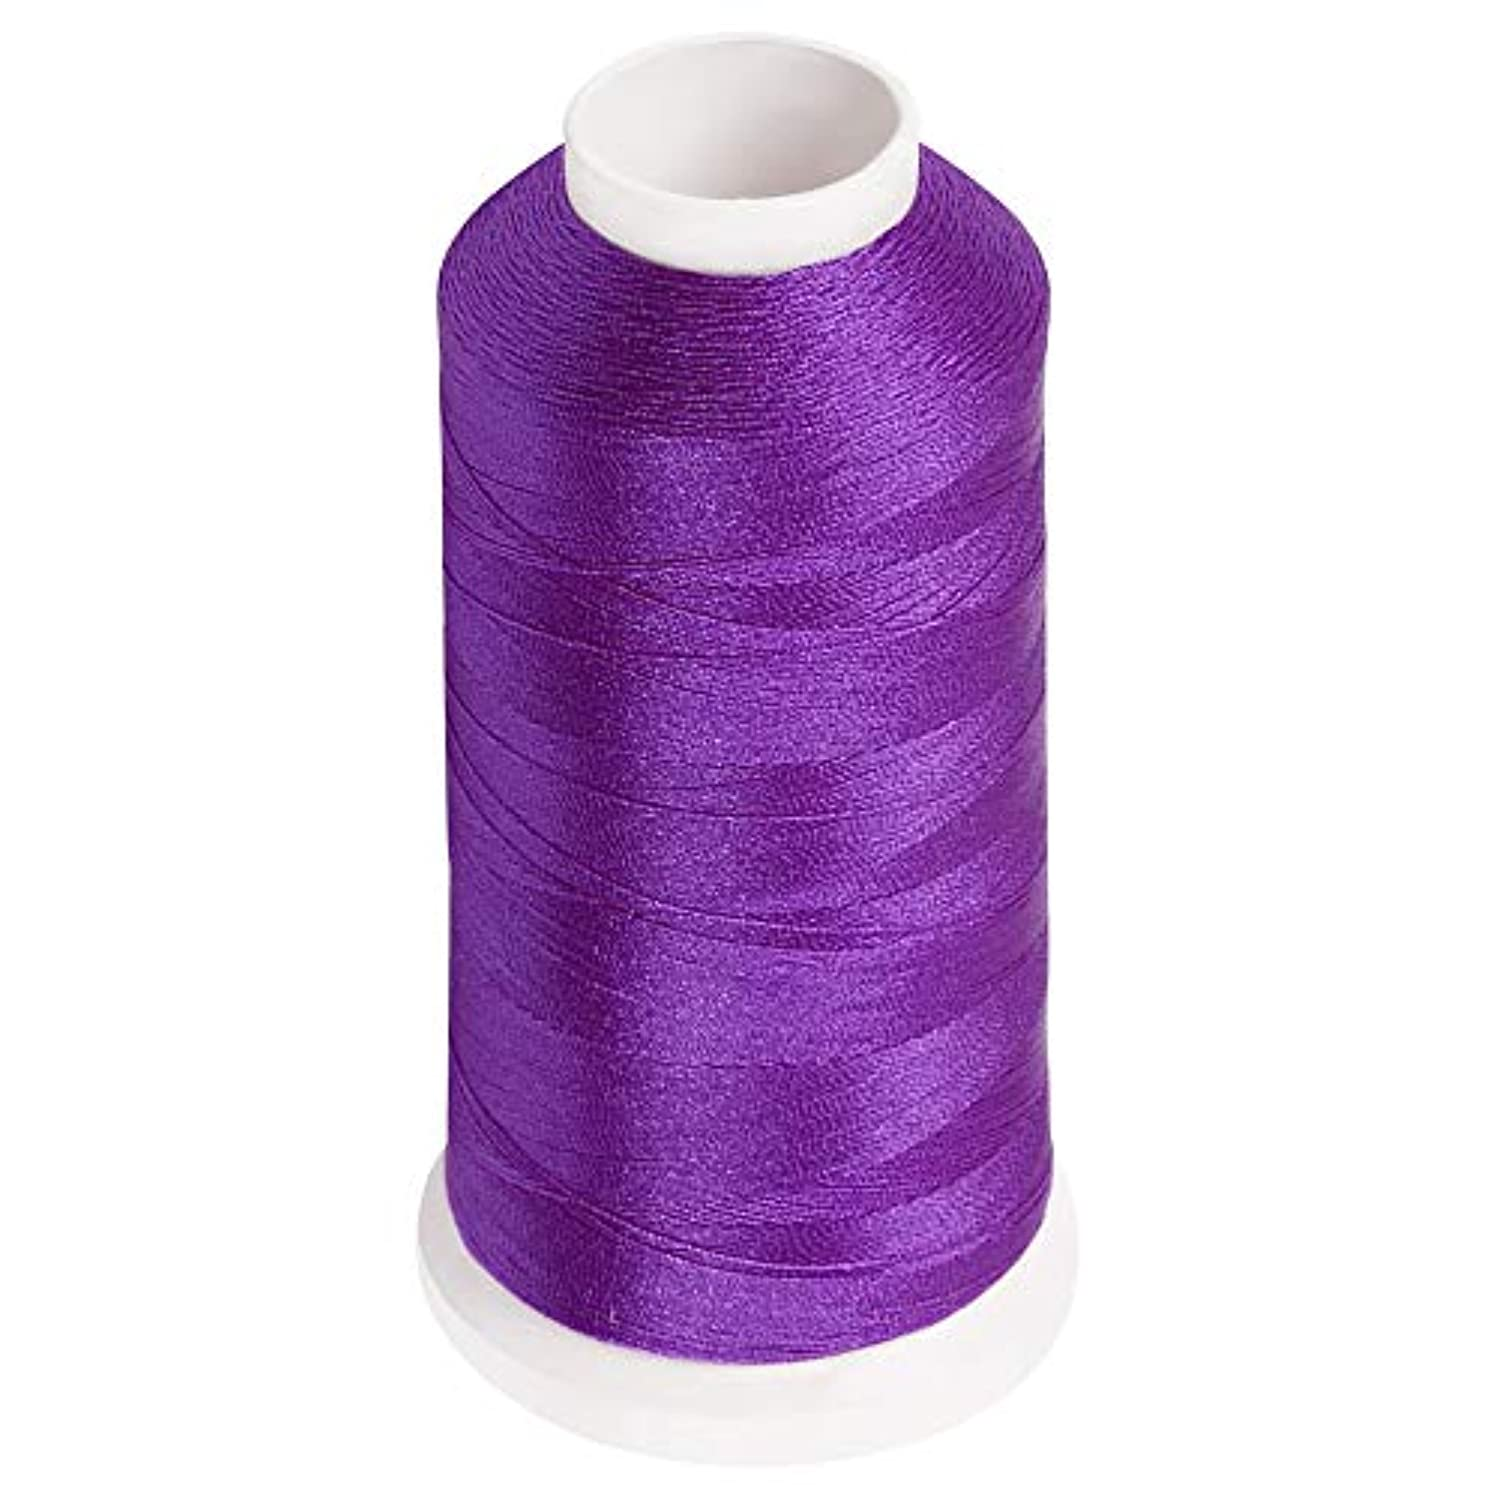 Desirable Life Bonded Nylon N66 Sewing Thread 1500 Yards Size #69 T70 210D/3 for Leather Denim Hand Machine Craft Shoe Bag Repairing Extra Strong Heavy Duty UV Rays Resistant Waterproof (Purple)